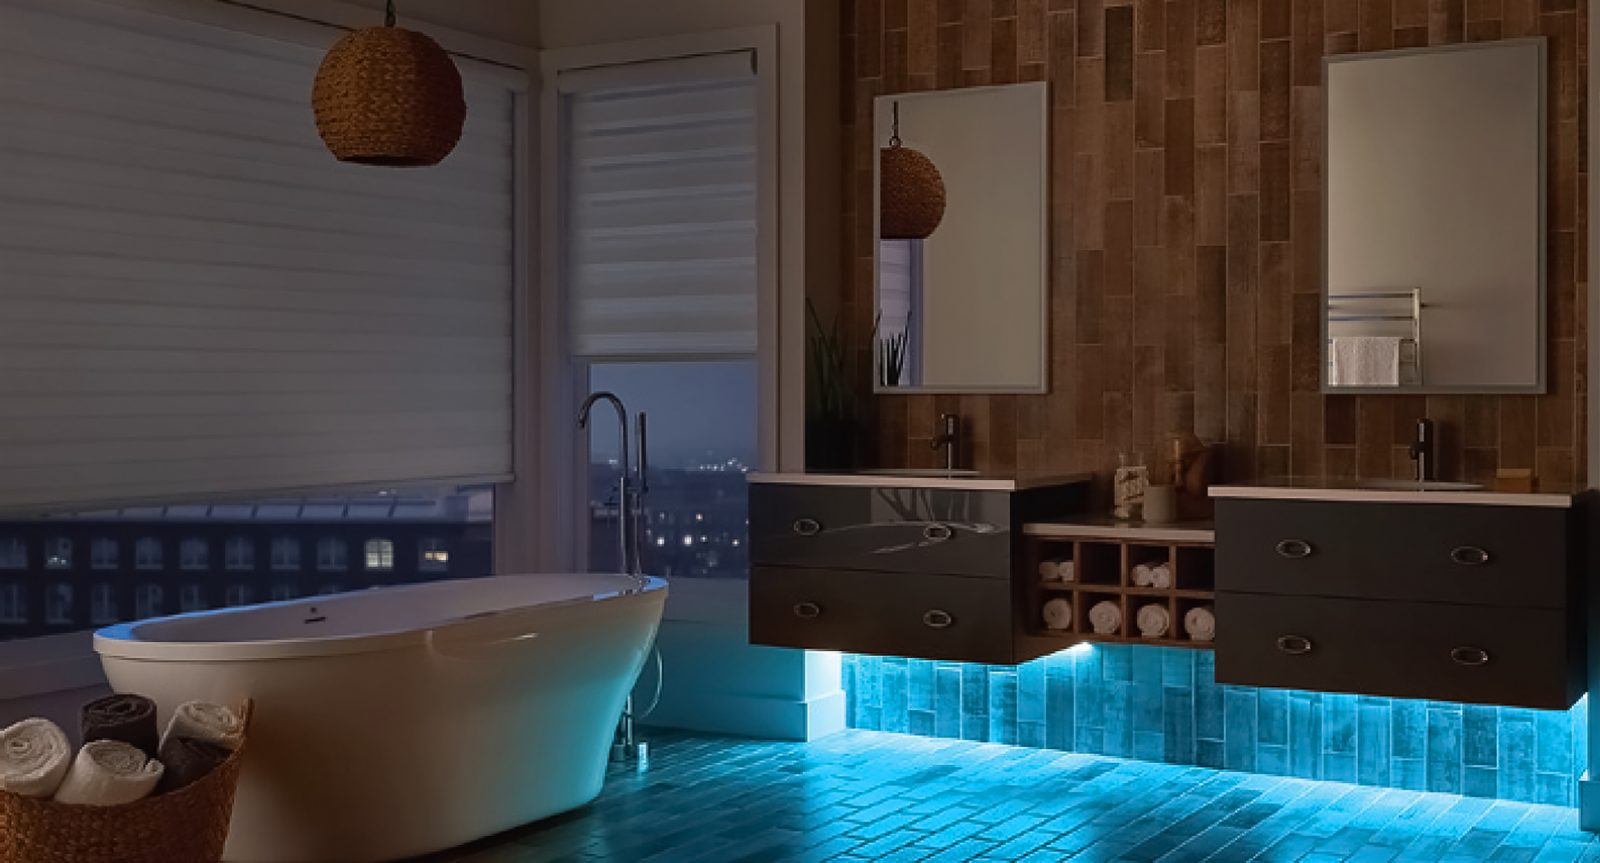 u v c cabinet light in luxury bathroom